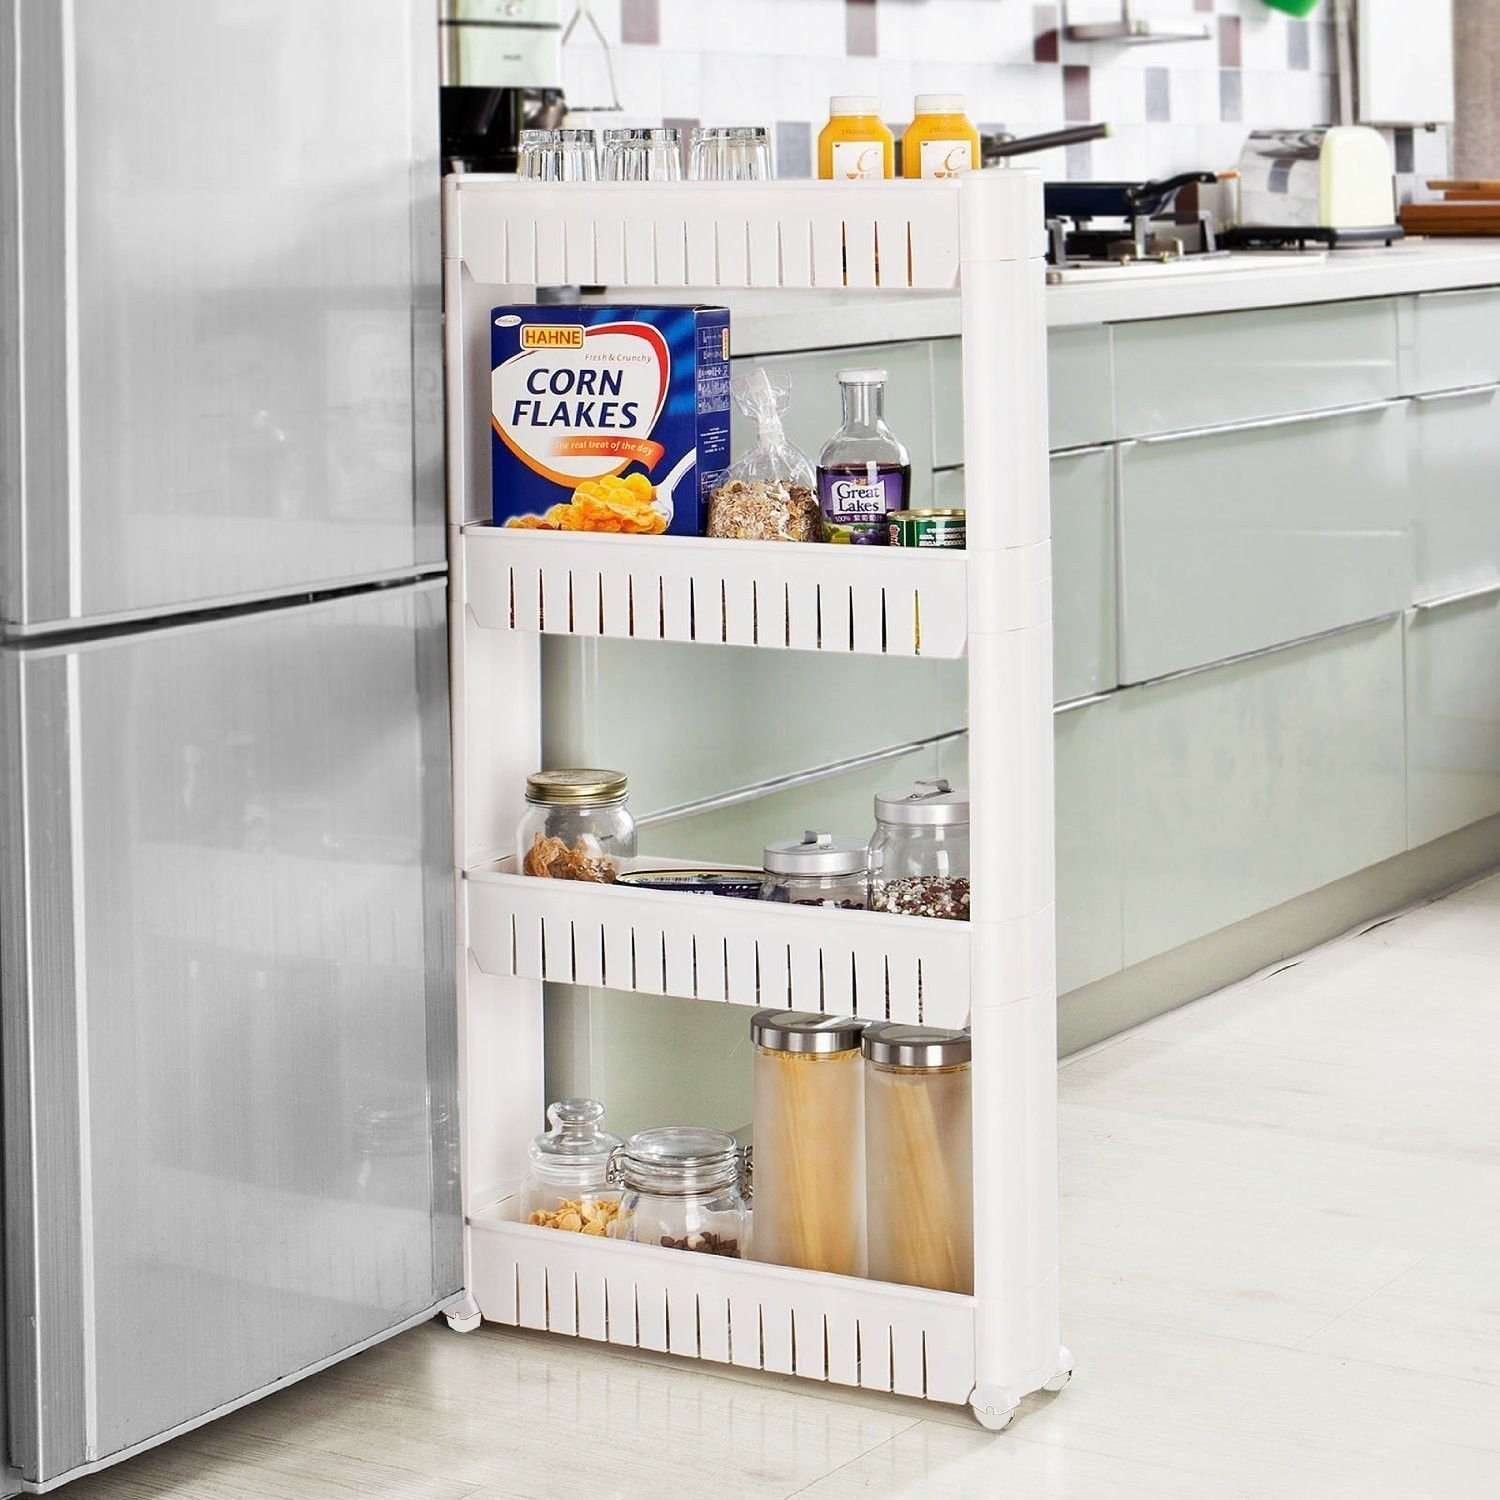 The compact rack stocked with jars and containers pictured next to a fridge with kitchen counters in the background.